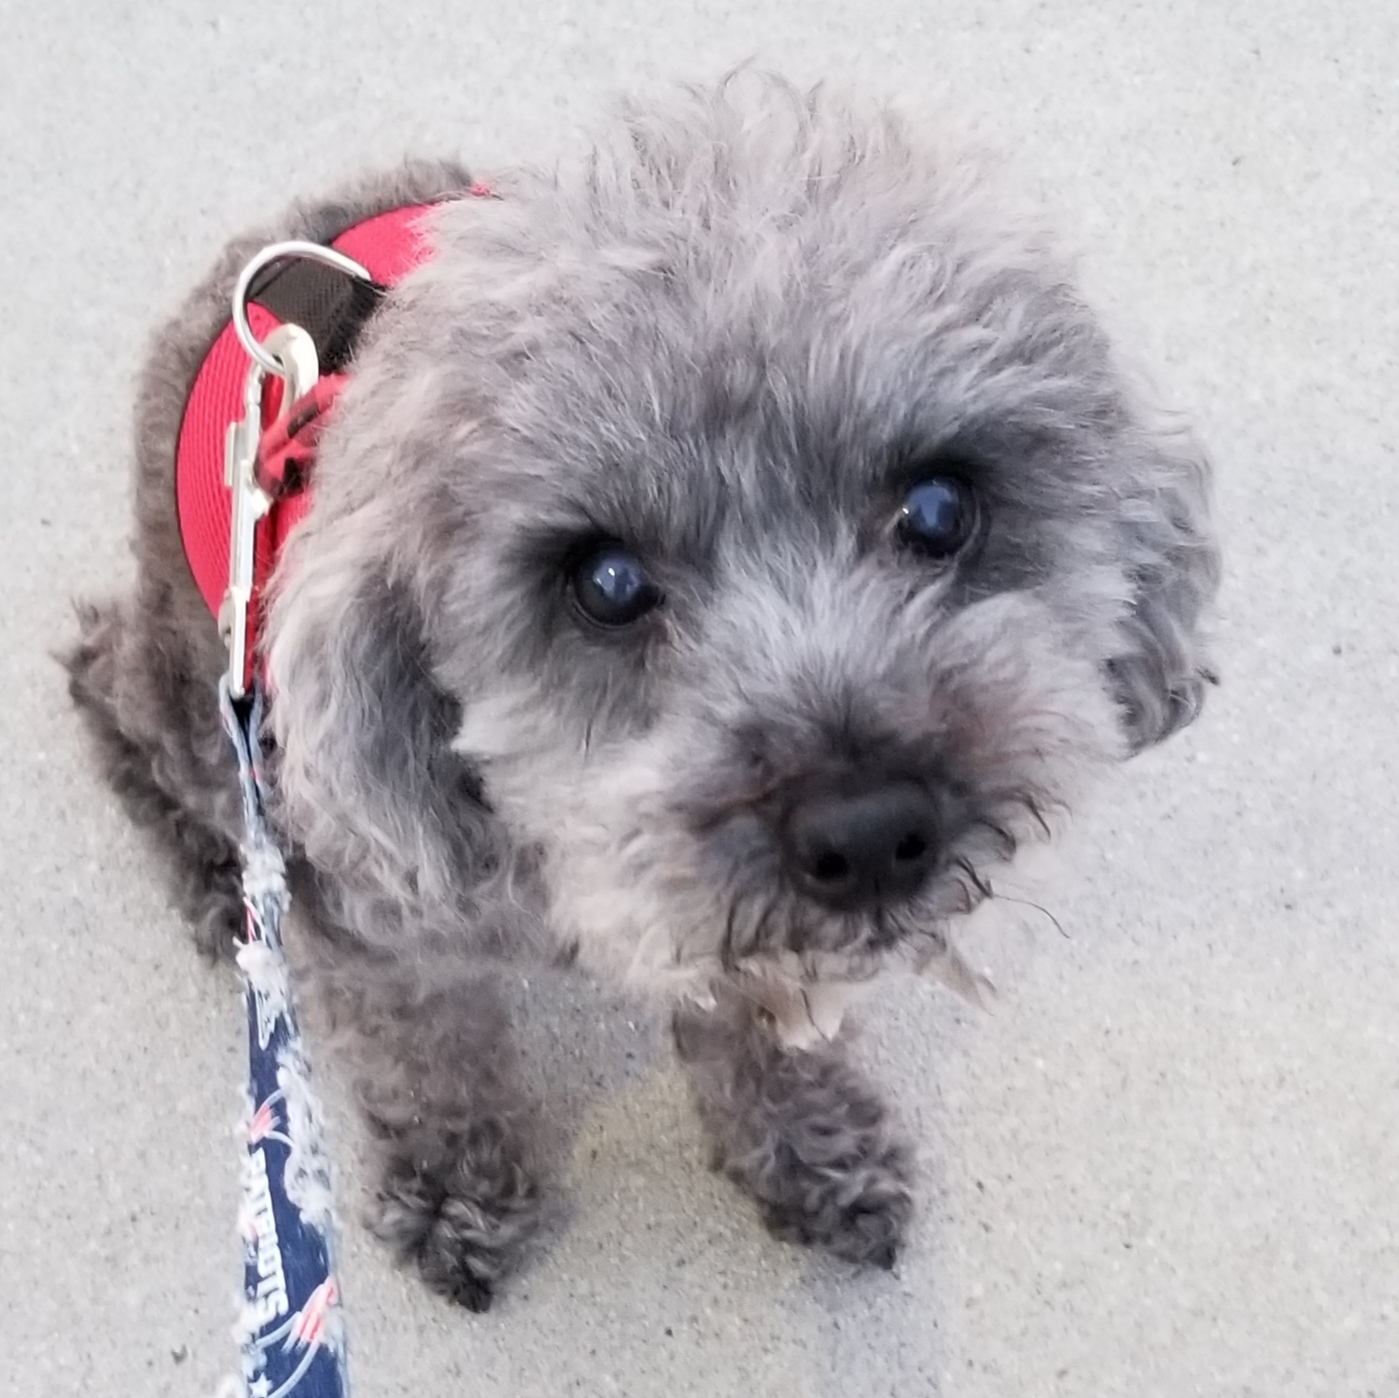 Who could resist this beautiful face? Jarvis the Evange-Poodle did a superb job making friends at the beach. People would come by to pet him and get some poodle-hugs, and then it's easy to start up a conversation about Jesus or to give them a gospel booklet. Good dog!!!